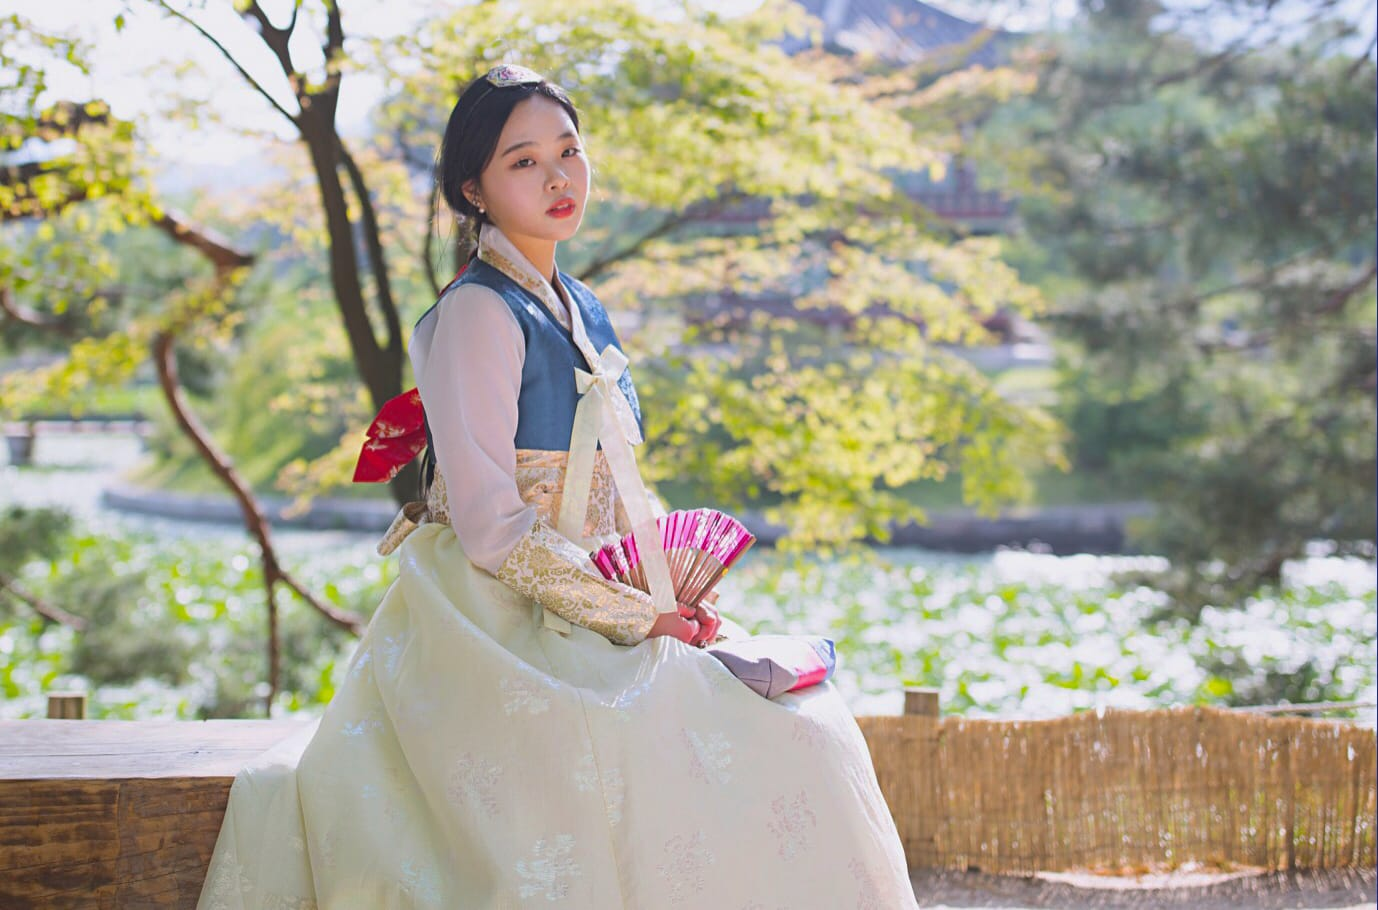 Girl in hanbok costume